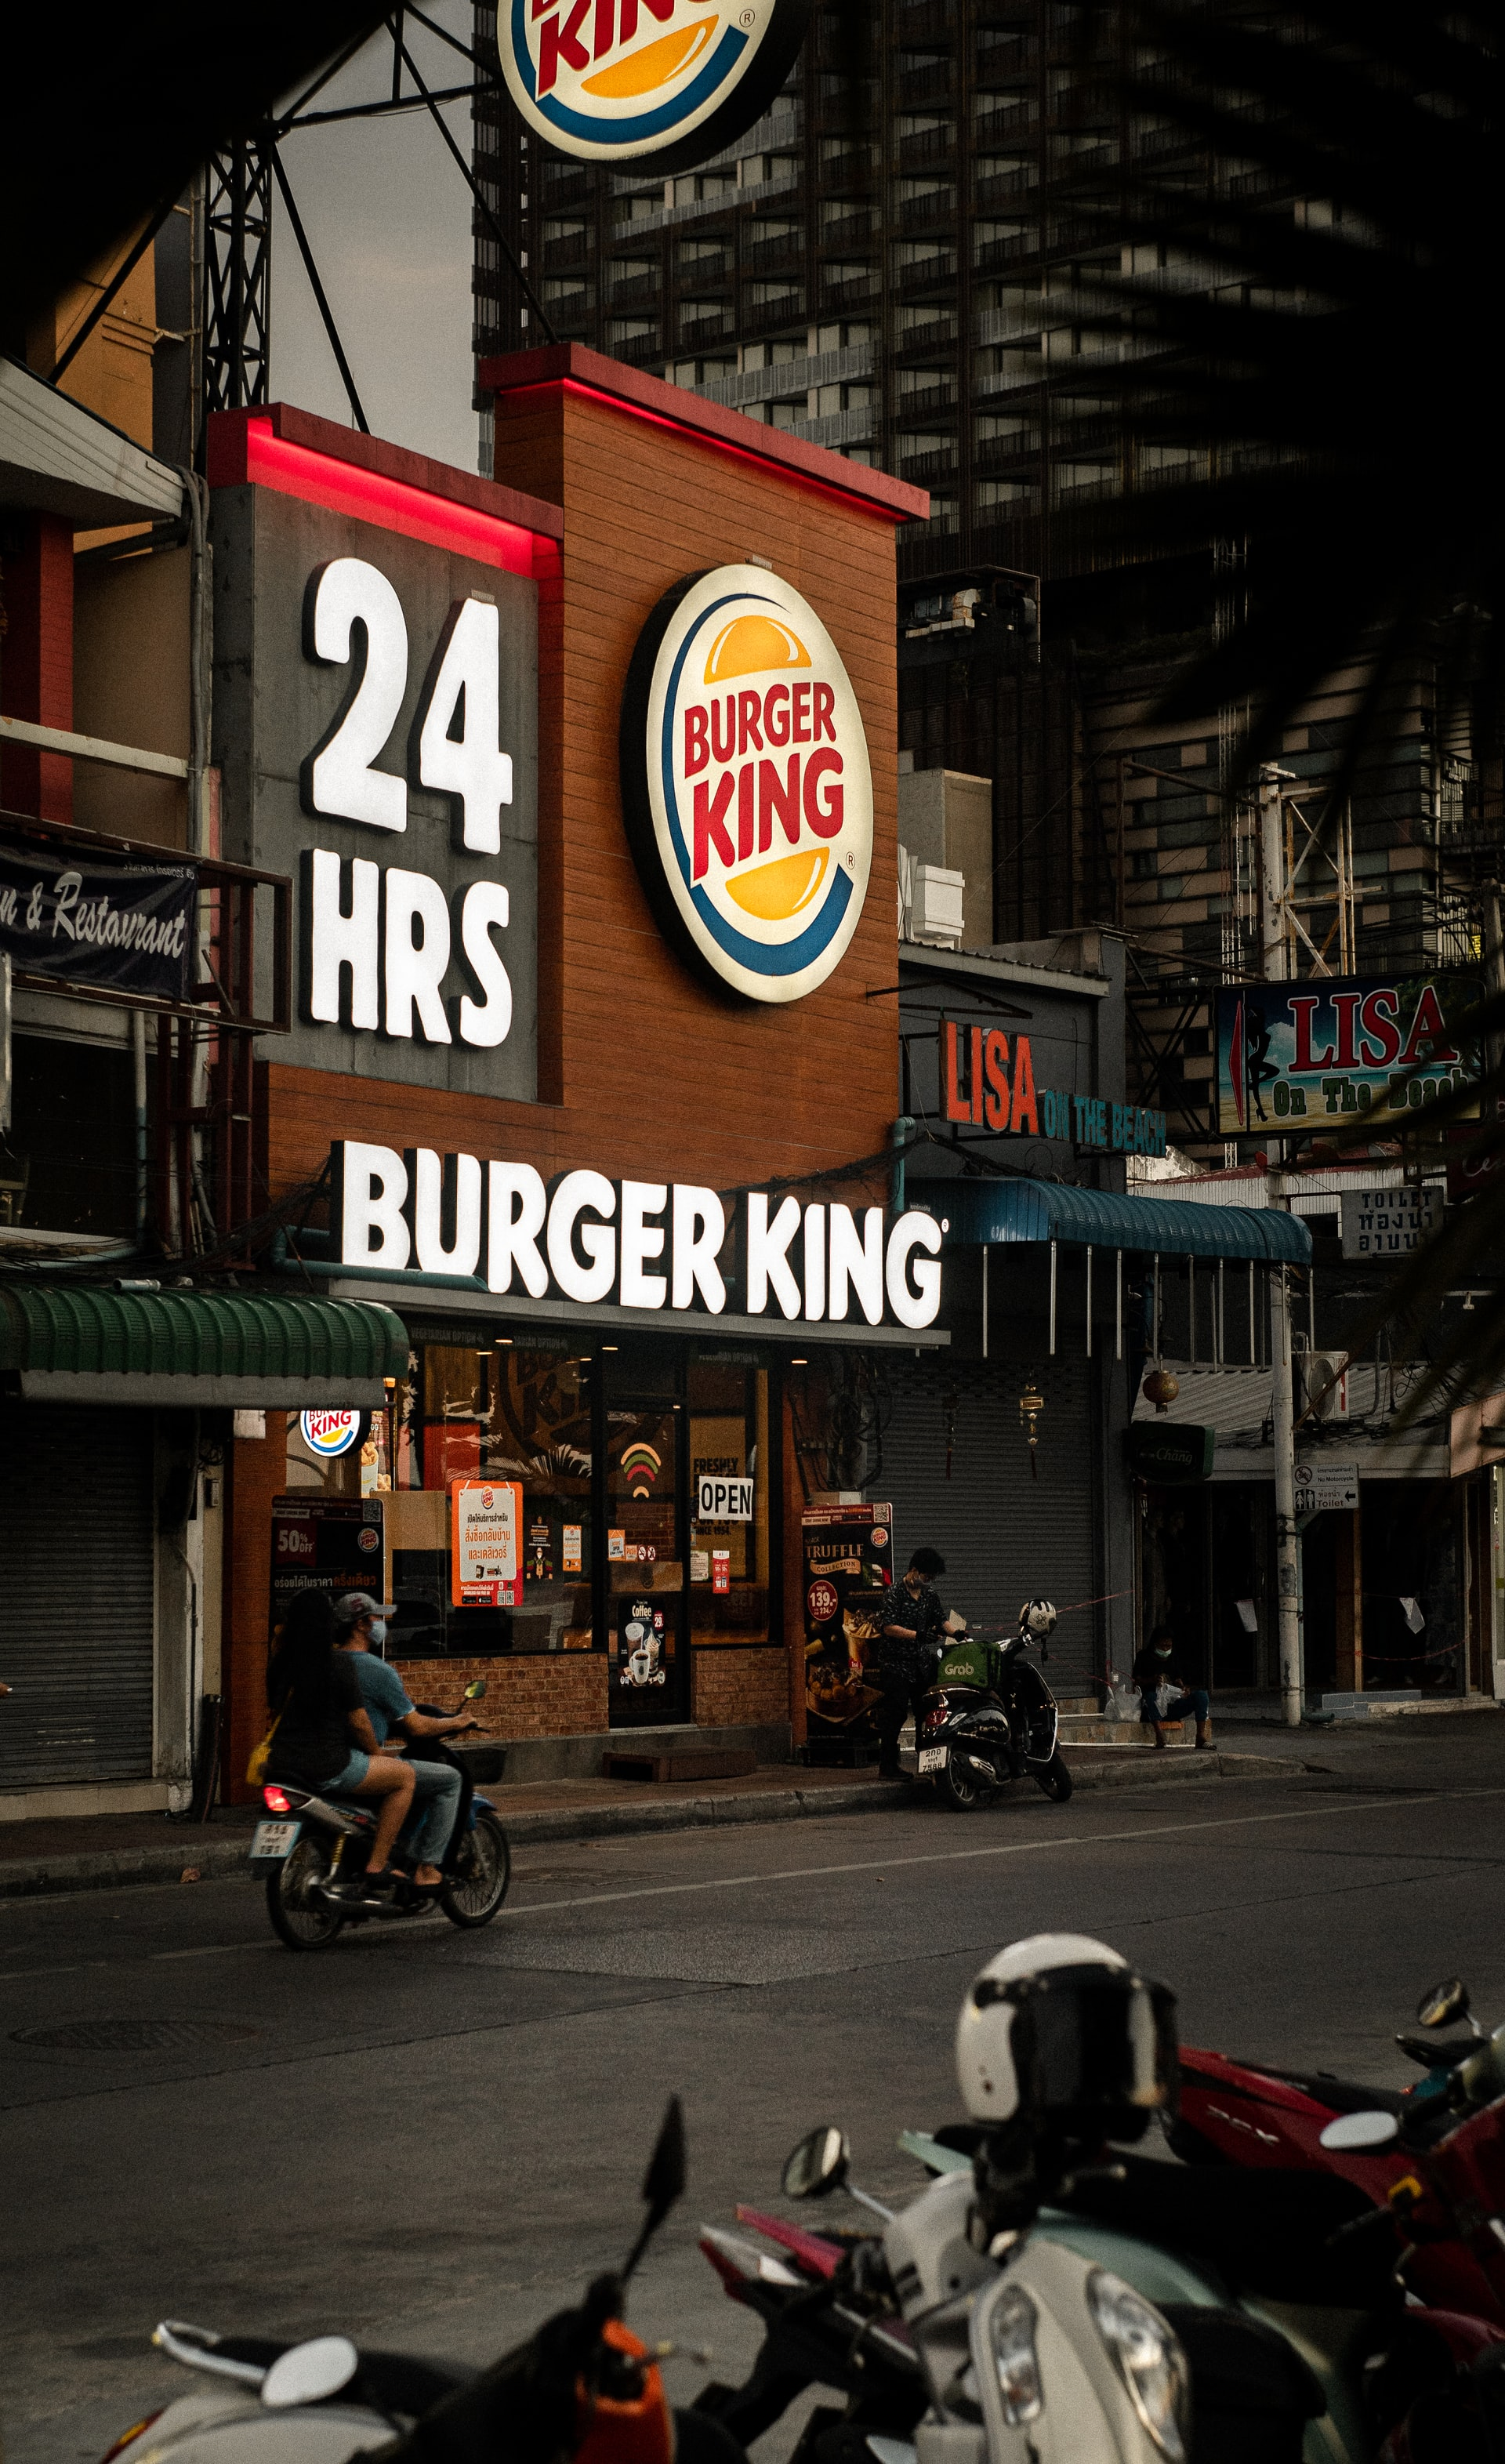 Burger King is saving the planet, one cow at a time.